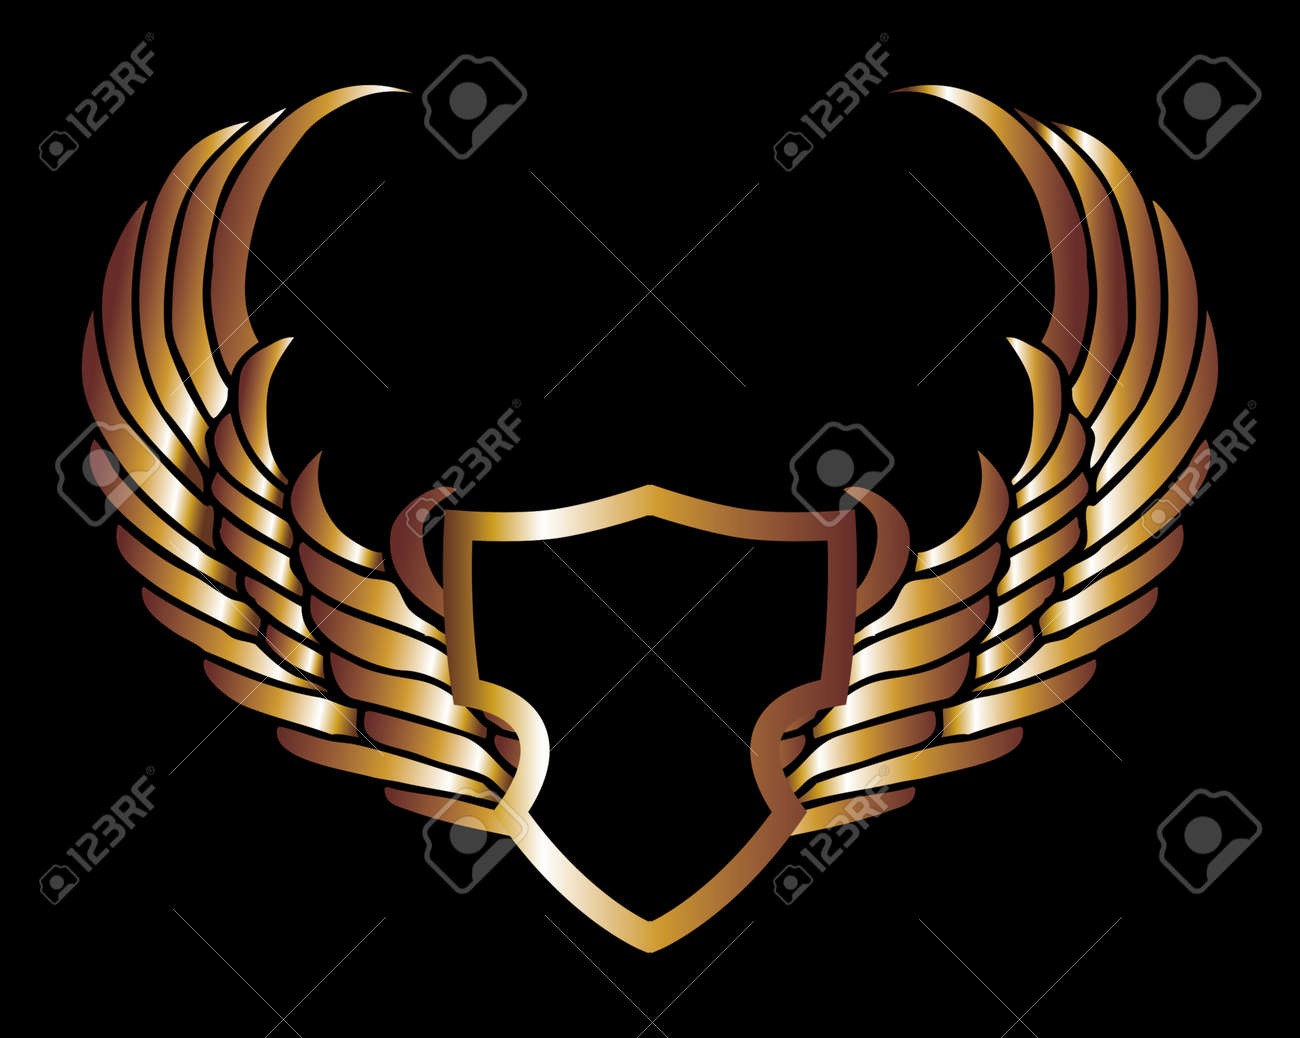 metalic gold wings and shield vector art Stock Vector - 19648466